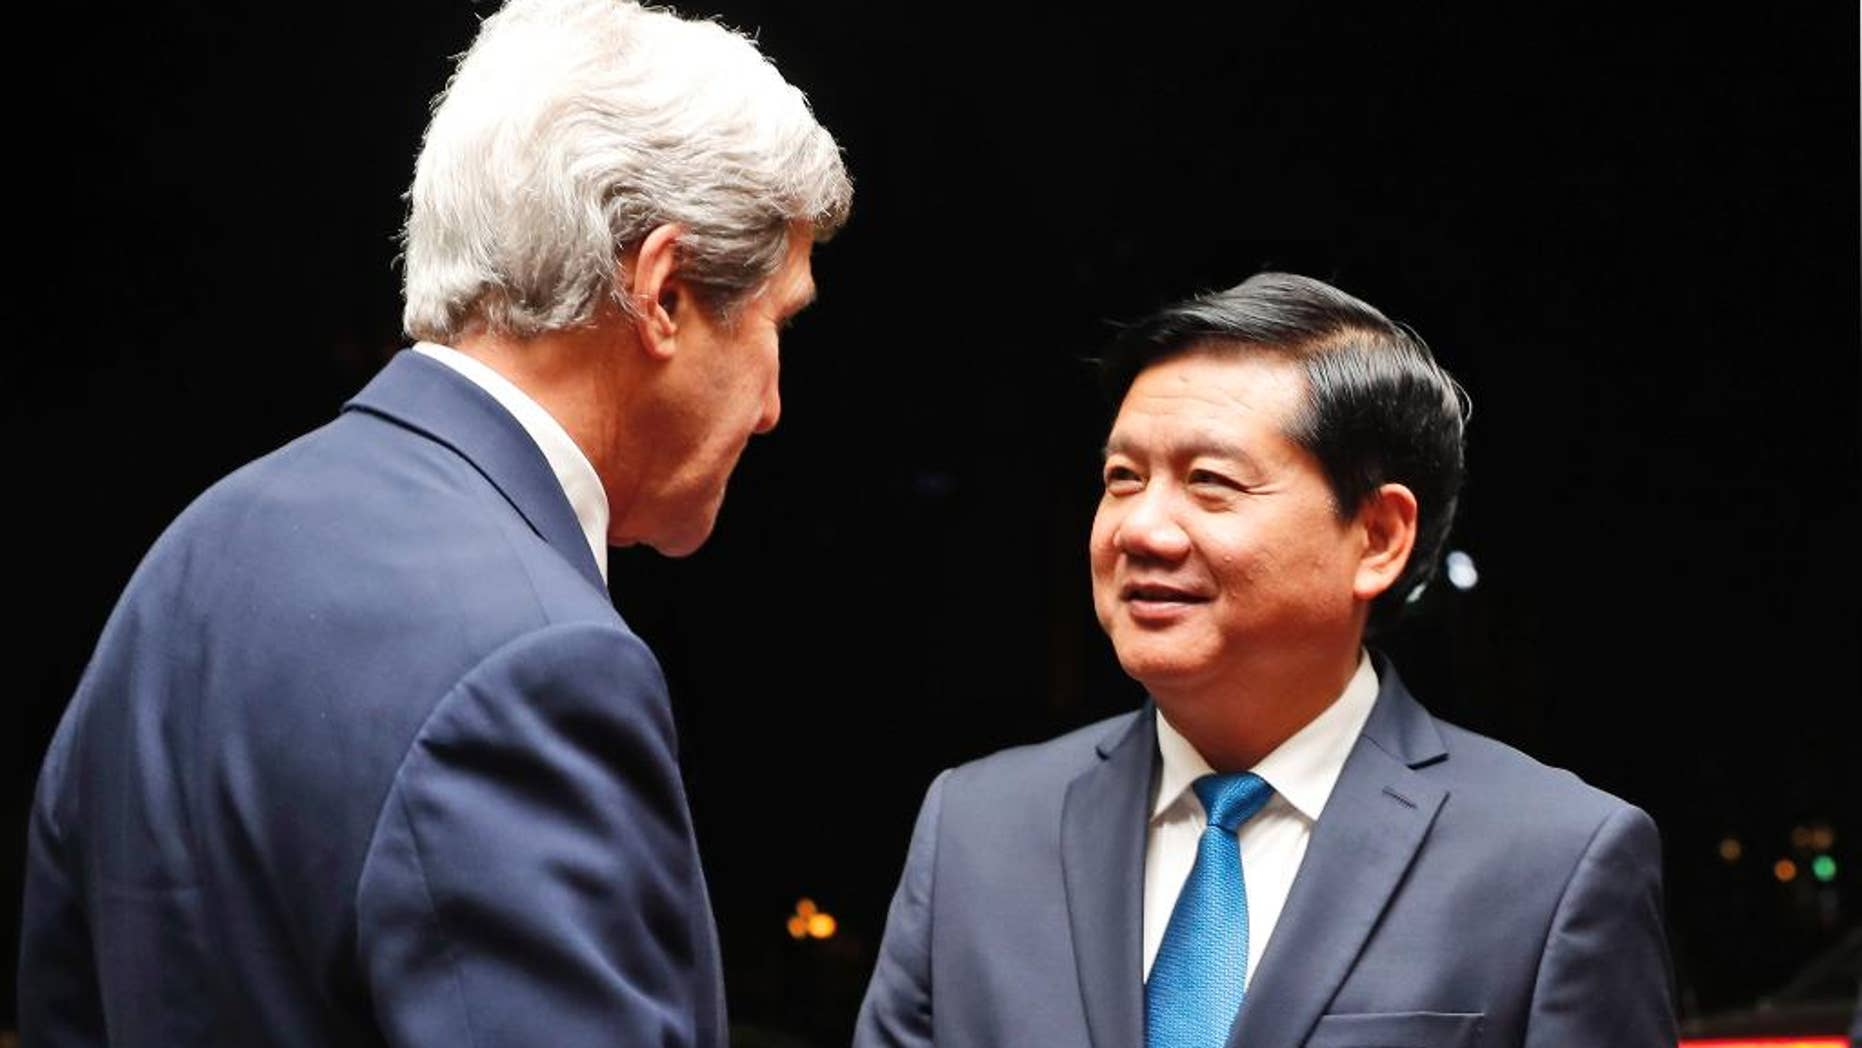 """FILE - In this Jan. 13, 2017 file photo, Ho Chi Minh City Party Committee Secretary Dinh La Thang, right, greets U.S. Secretary of State John Kerry upon Kerry's arrival for a meeting in Ho Chi Minh City, Vietnam. Thang has been removed from the powerful Politburo for committing """"very serious mistakes and violations"""" when he was head of the country's oil and gas monopoly PetroVietnam. The Central Committee voted in majority to impose the disciplinary measures against Thang, was chairman of the board of PetroVietnam from 2005 until he was appointed transport minister in 2011, according to a statement posted on the party's website late Sunday, May 7. (AP Photo/Alex Brandon, Pool, File)"""